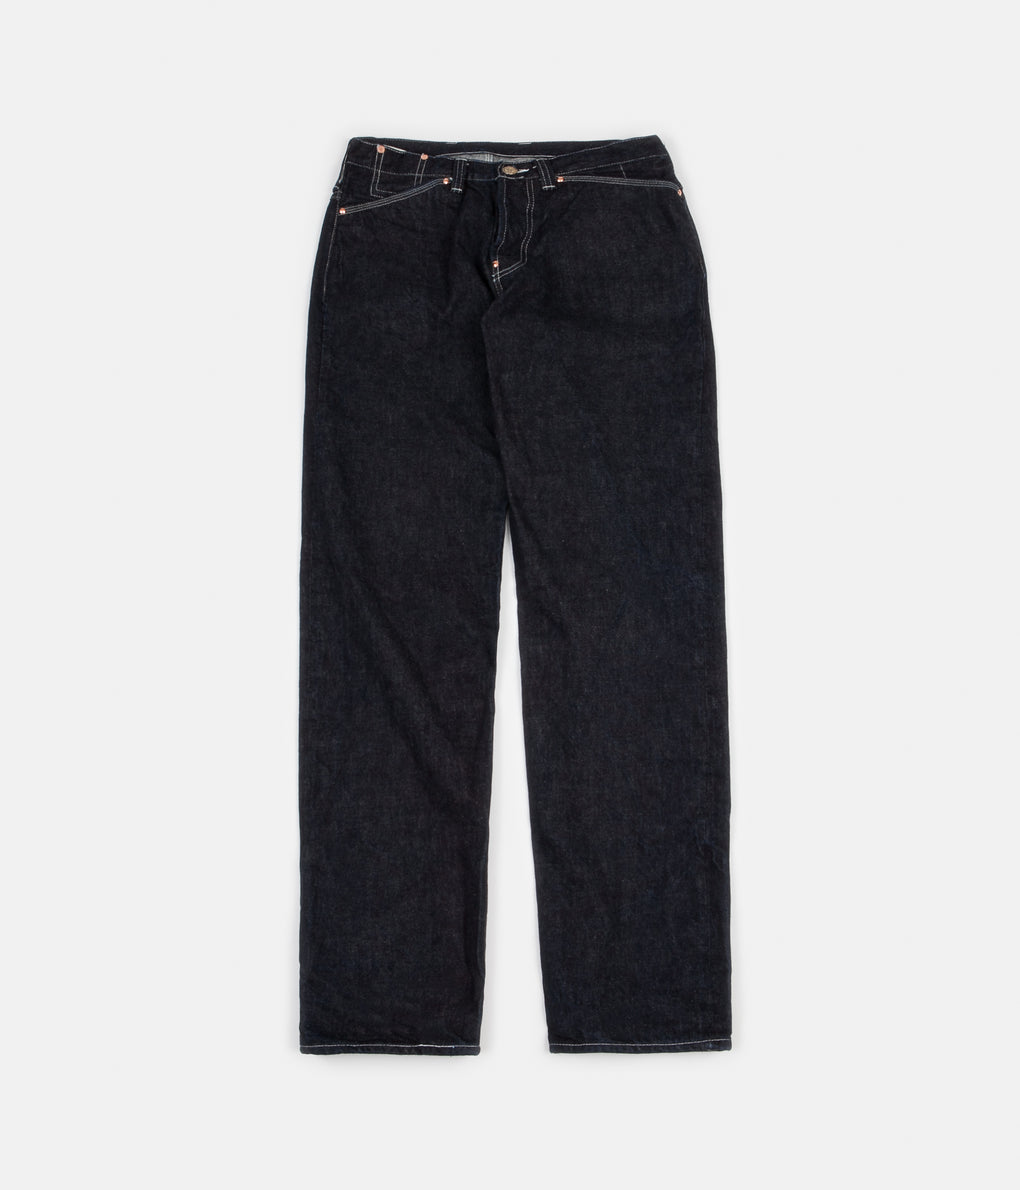 Tender Type 132 Wide Jeans - 16oz Selvage Denim Rinse Wash